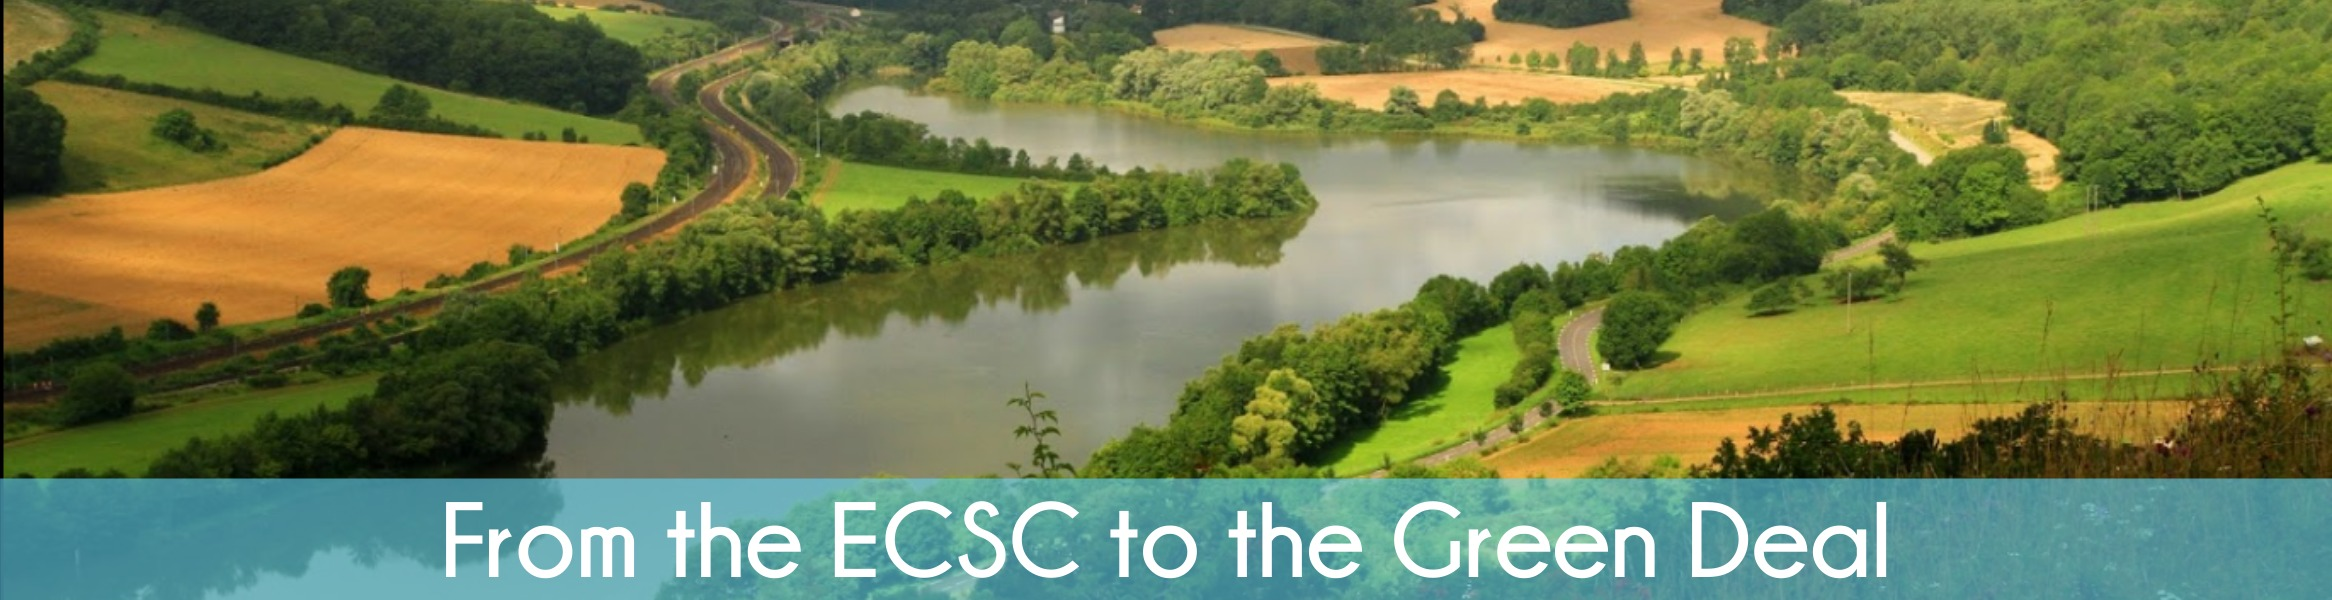 From the ECSC to the Green Deal